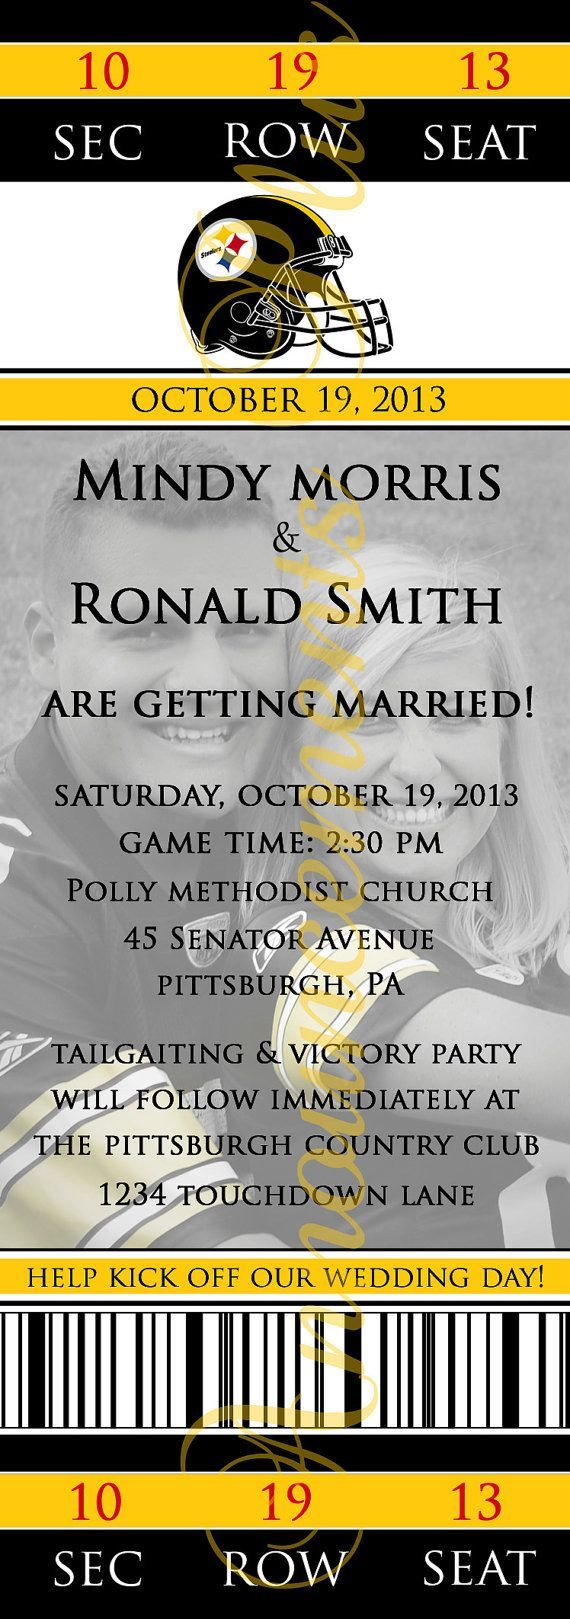 Football Theme Wedding Invitation by AnnouncementsPlus, $15.00 (any team or sport available) sports save the dates, baseball save the dates #wedding #sports